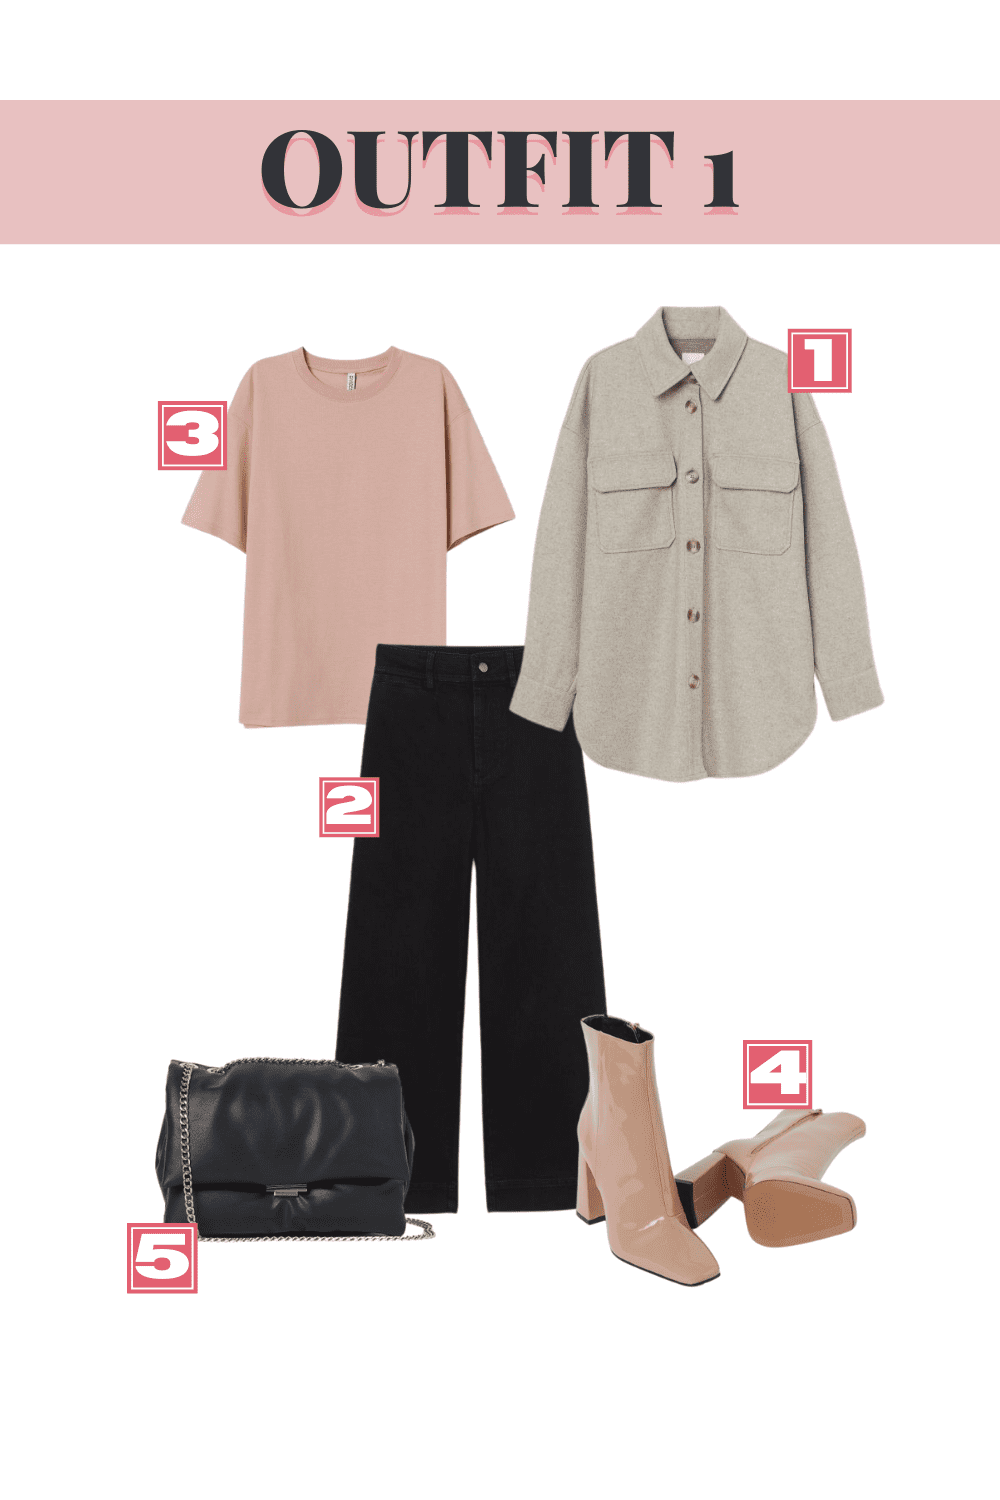 H&M Fall Top Picks - Outfit 1